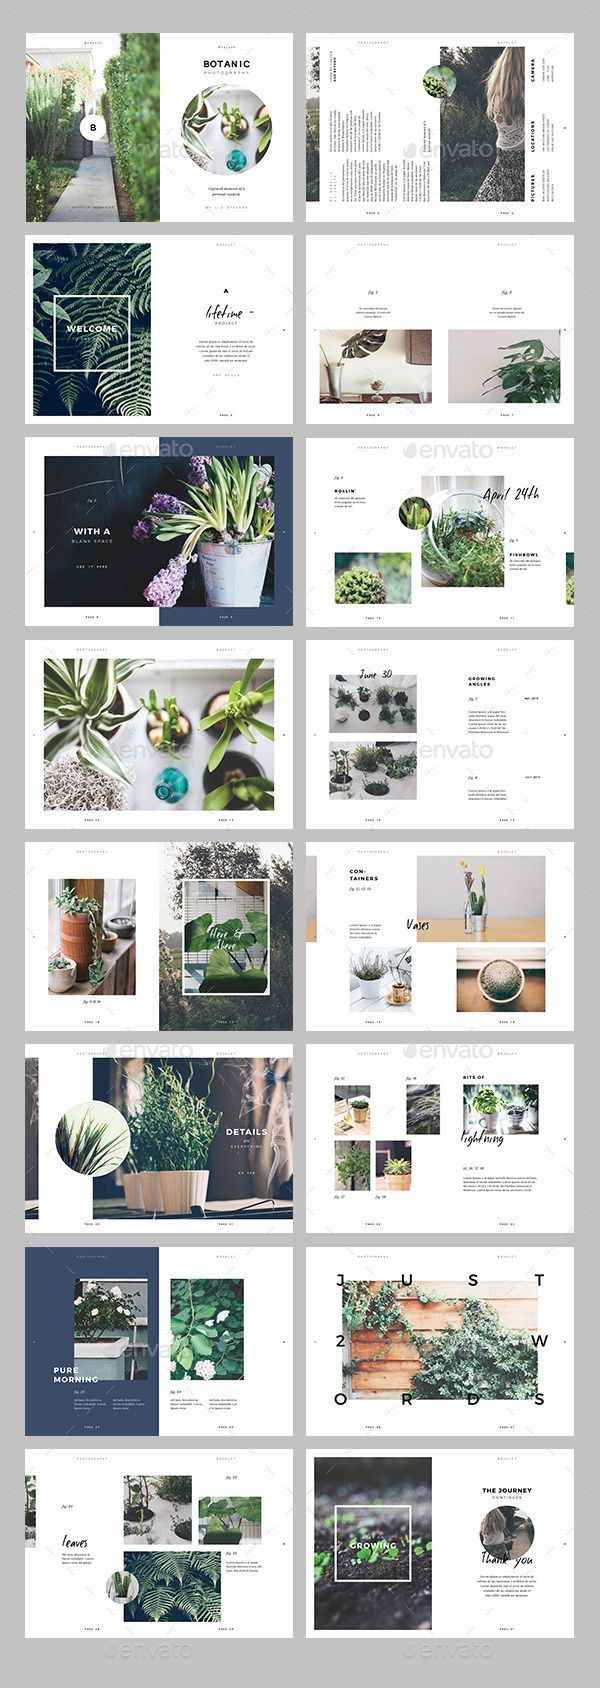 Publication Design | http://www.lab333.com  www.facebook.com/pages/LAB-STYLE/585086788169863  http://www.lab333style.com https://instagram.com/lab_333 http://lablikes.tumblr.com  www.pinterest.com/labstyle